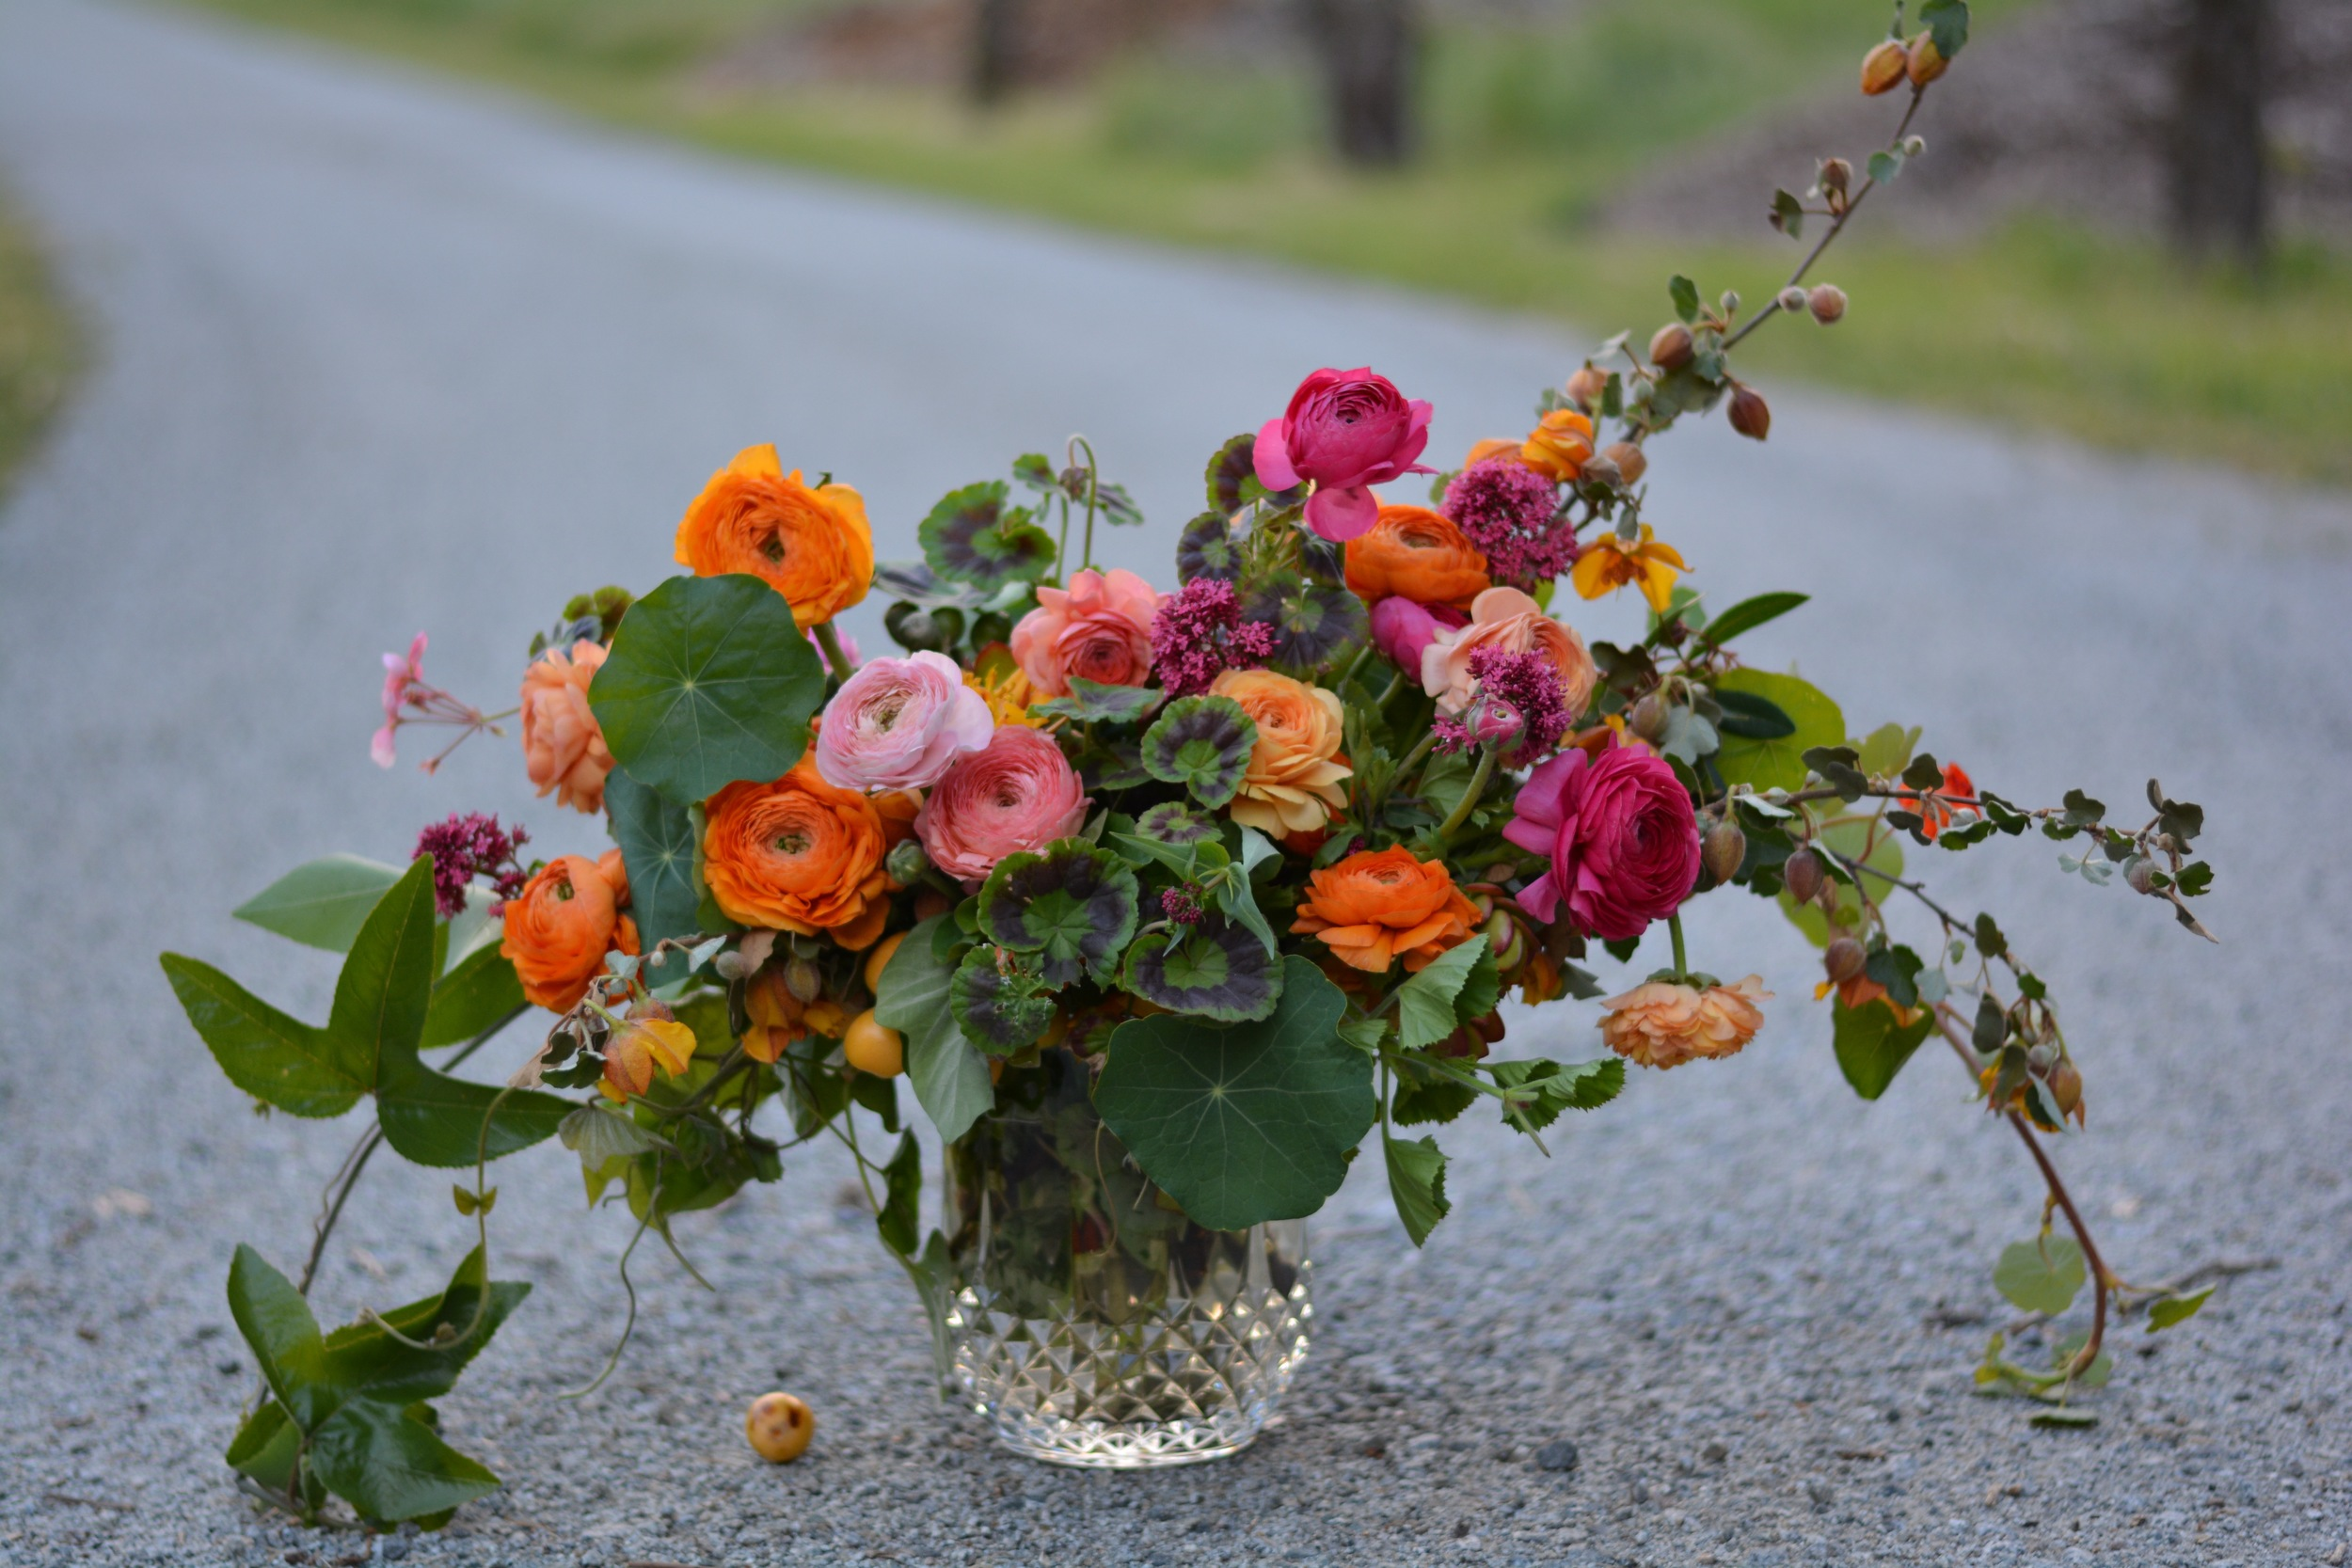 Heirloom Floral Design - Bend Weddings -Farmer florist-Locally grown- Oregon grown-Slow flowers-Centerpieces-seasonal flower allience- santa cruz flowers.jpg